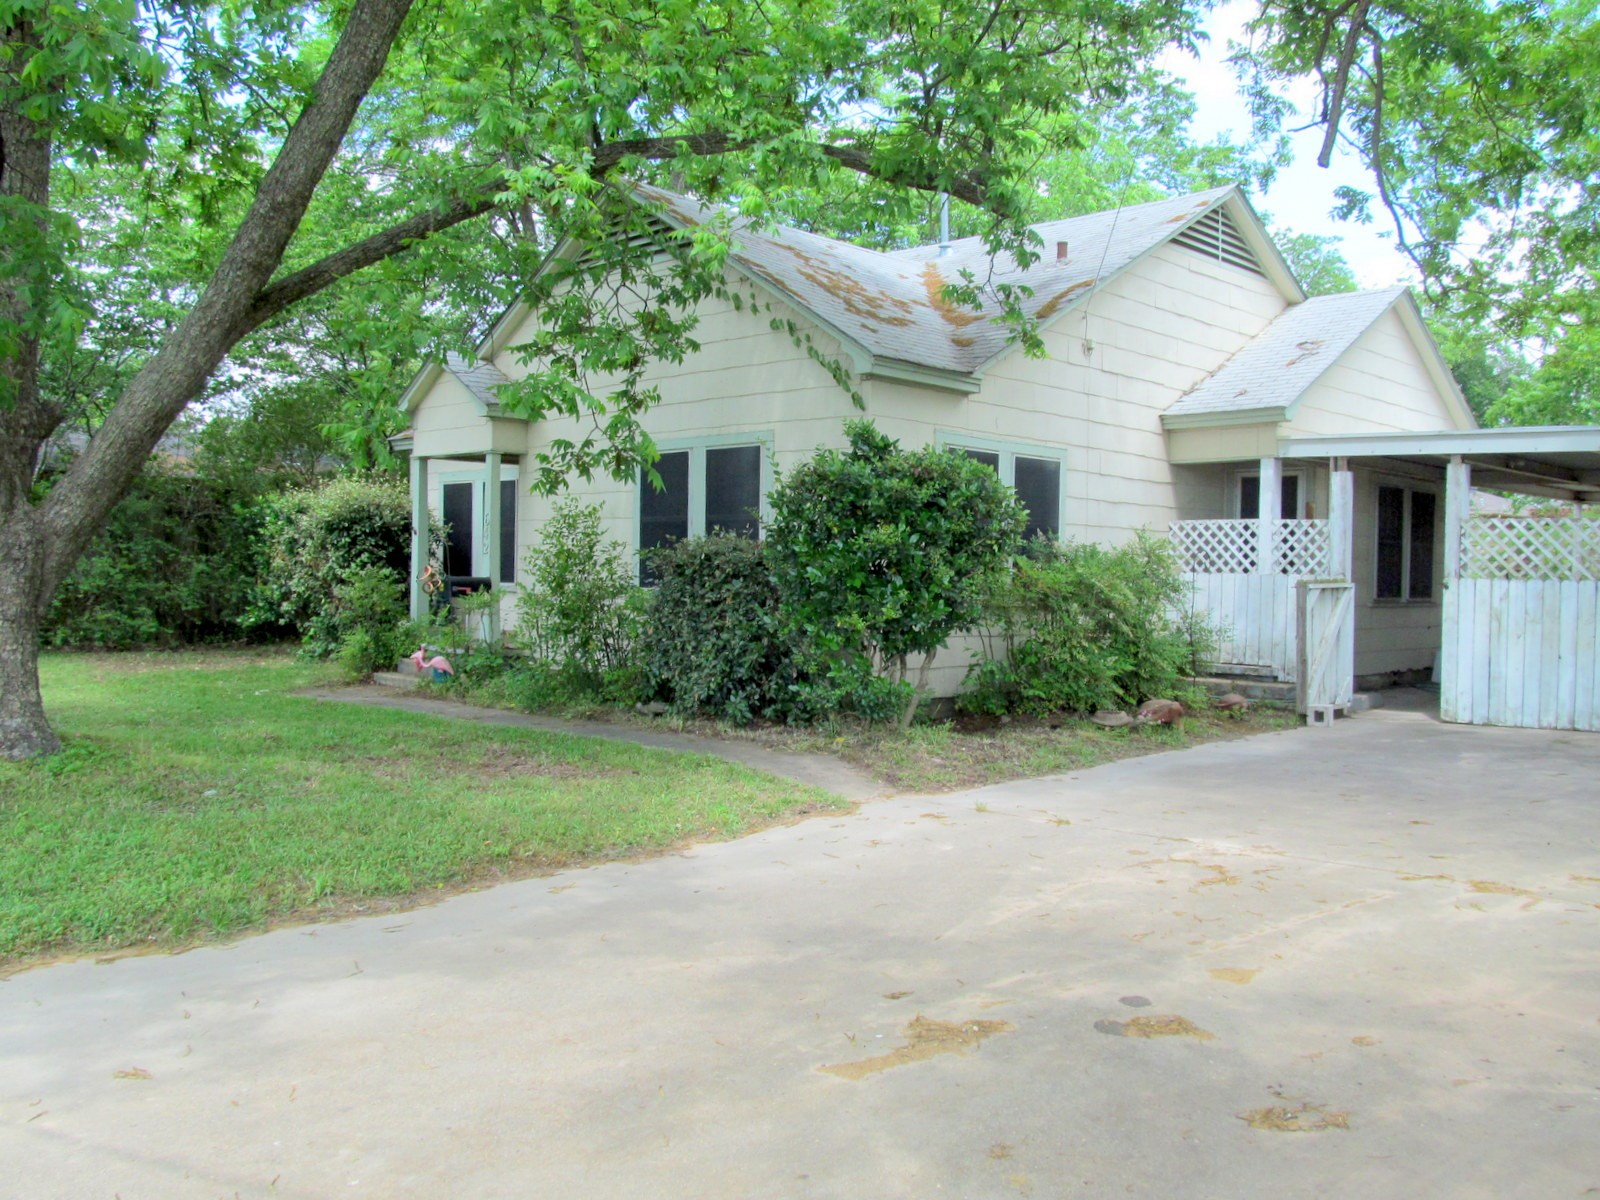 WINNSBORO TEXAS - FRANKLIN COUNTY - 2 BEDROOM COTTAGE STYLE